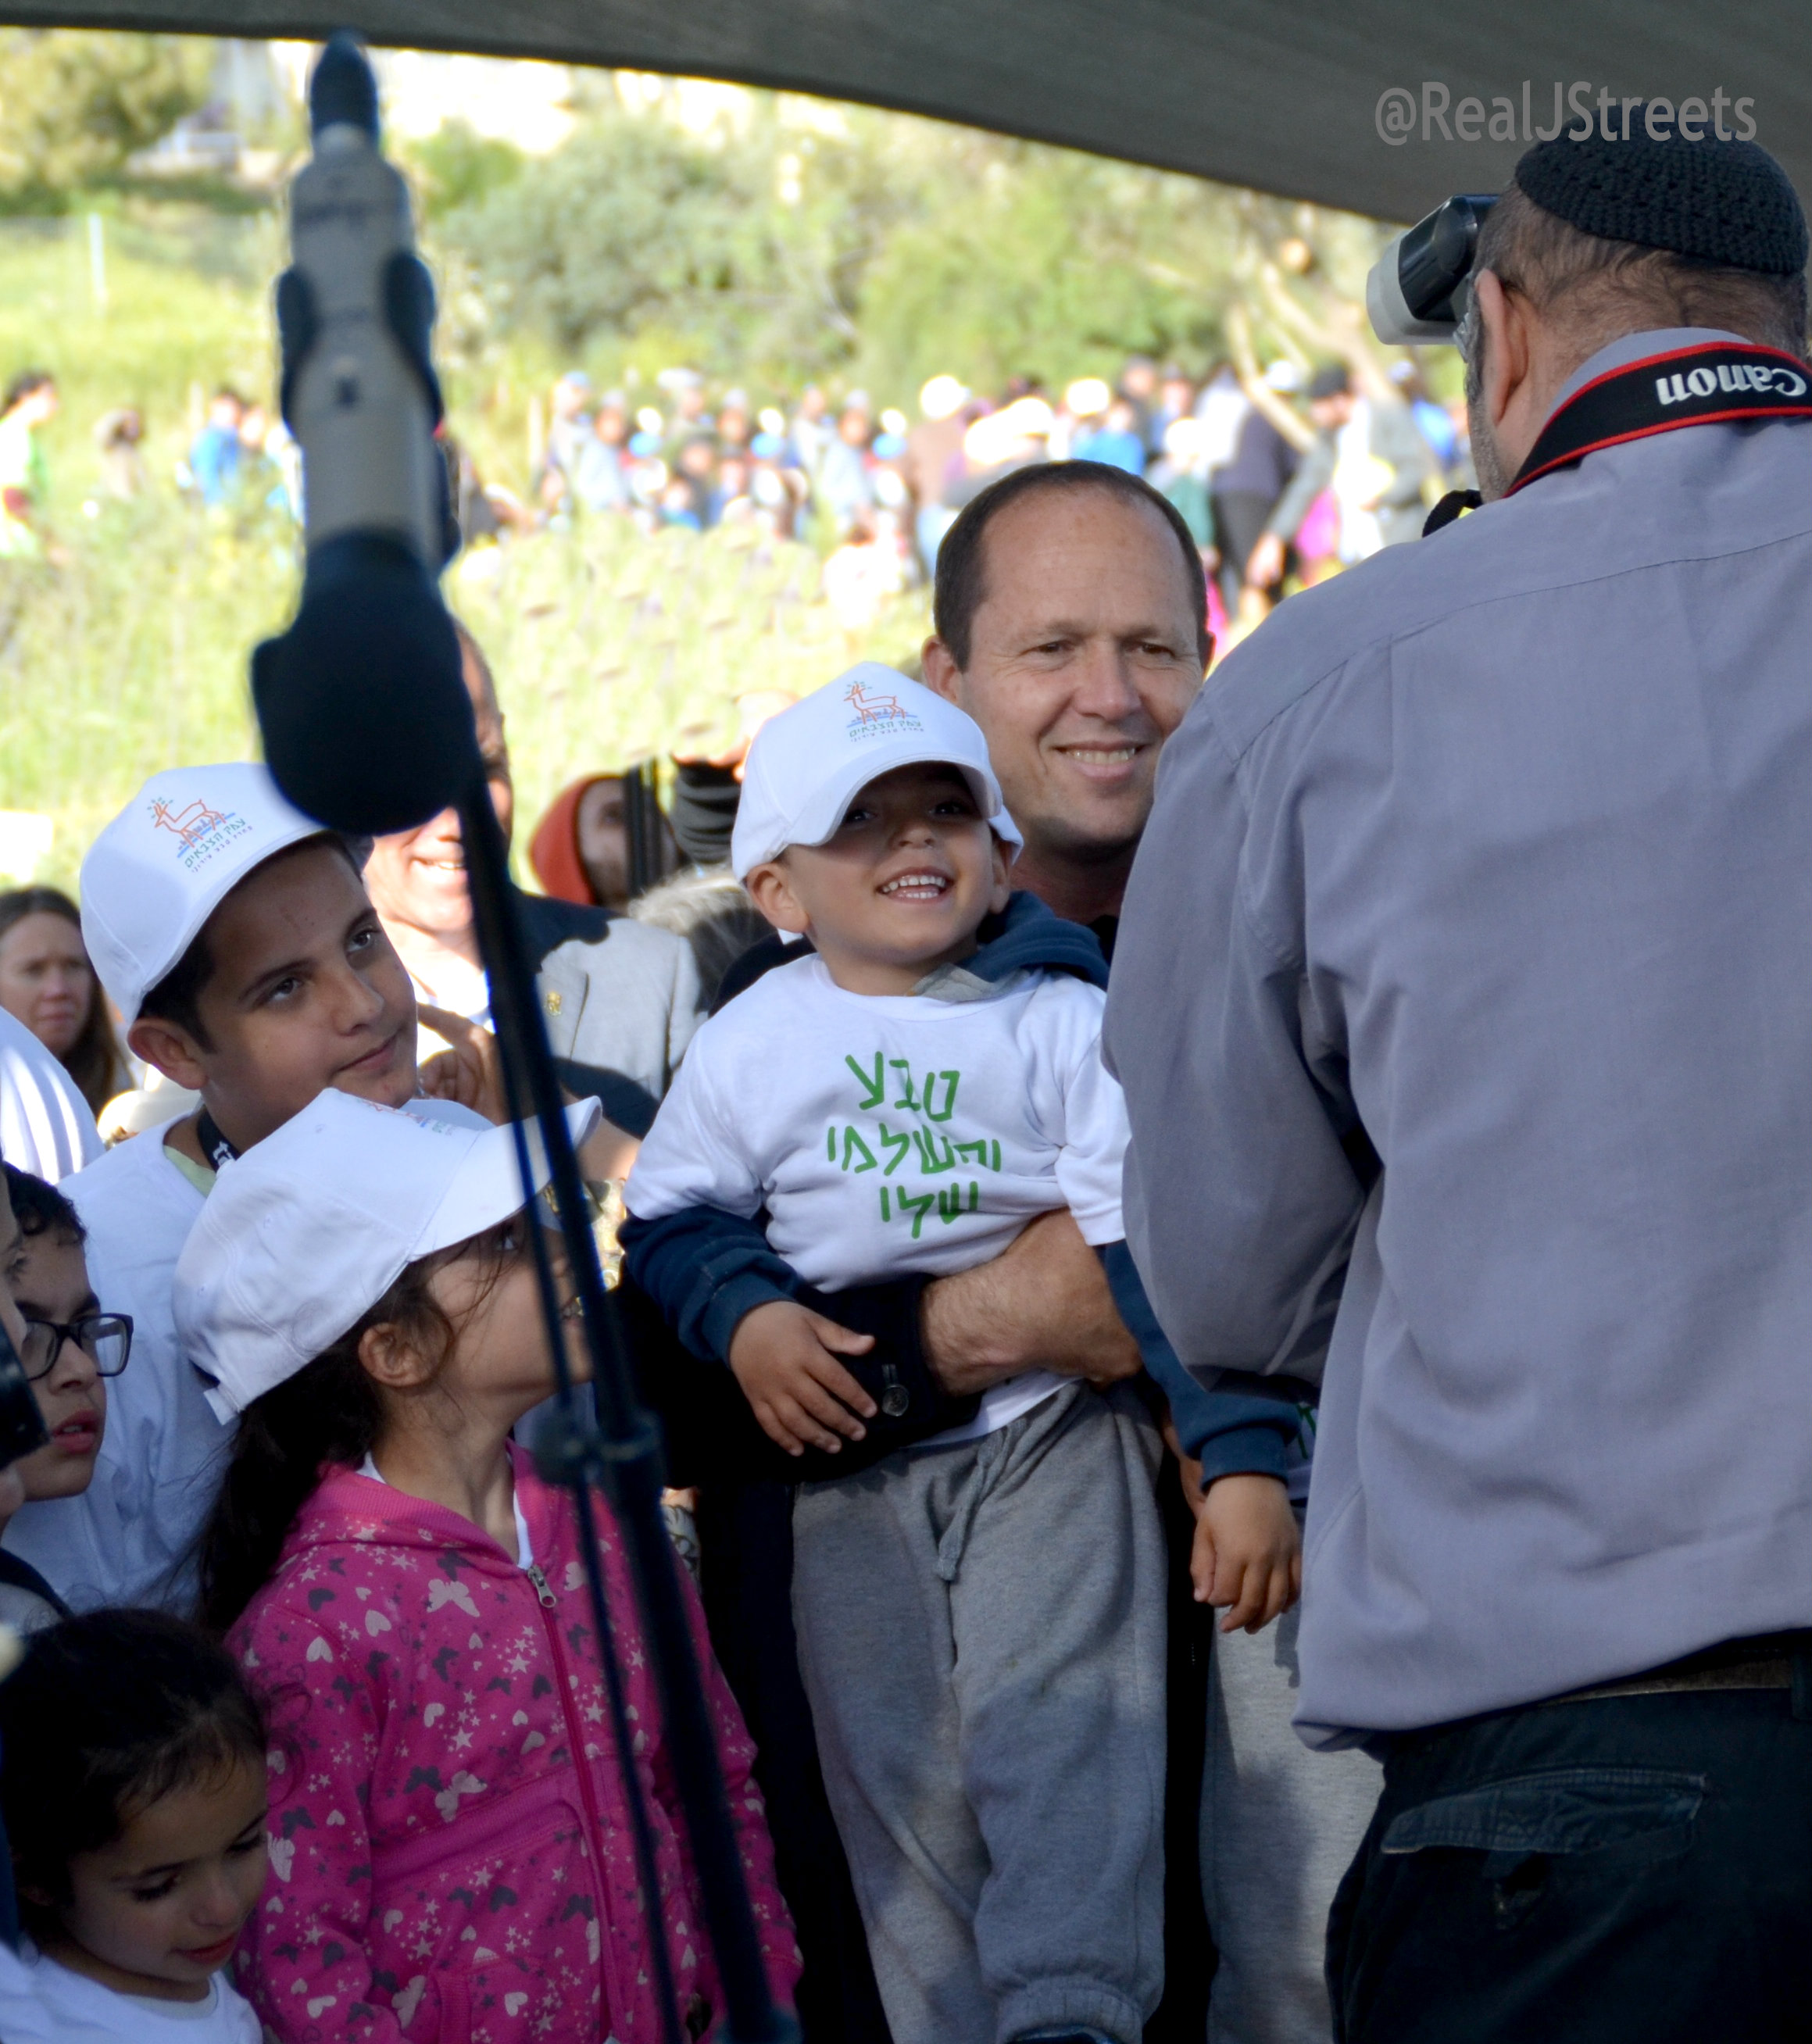 Jerusalem mayor Nir Barkat smiling with children taking photos